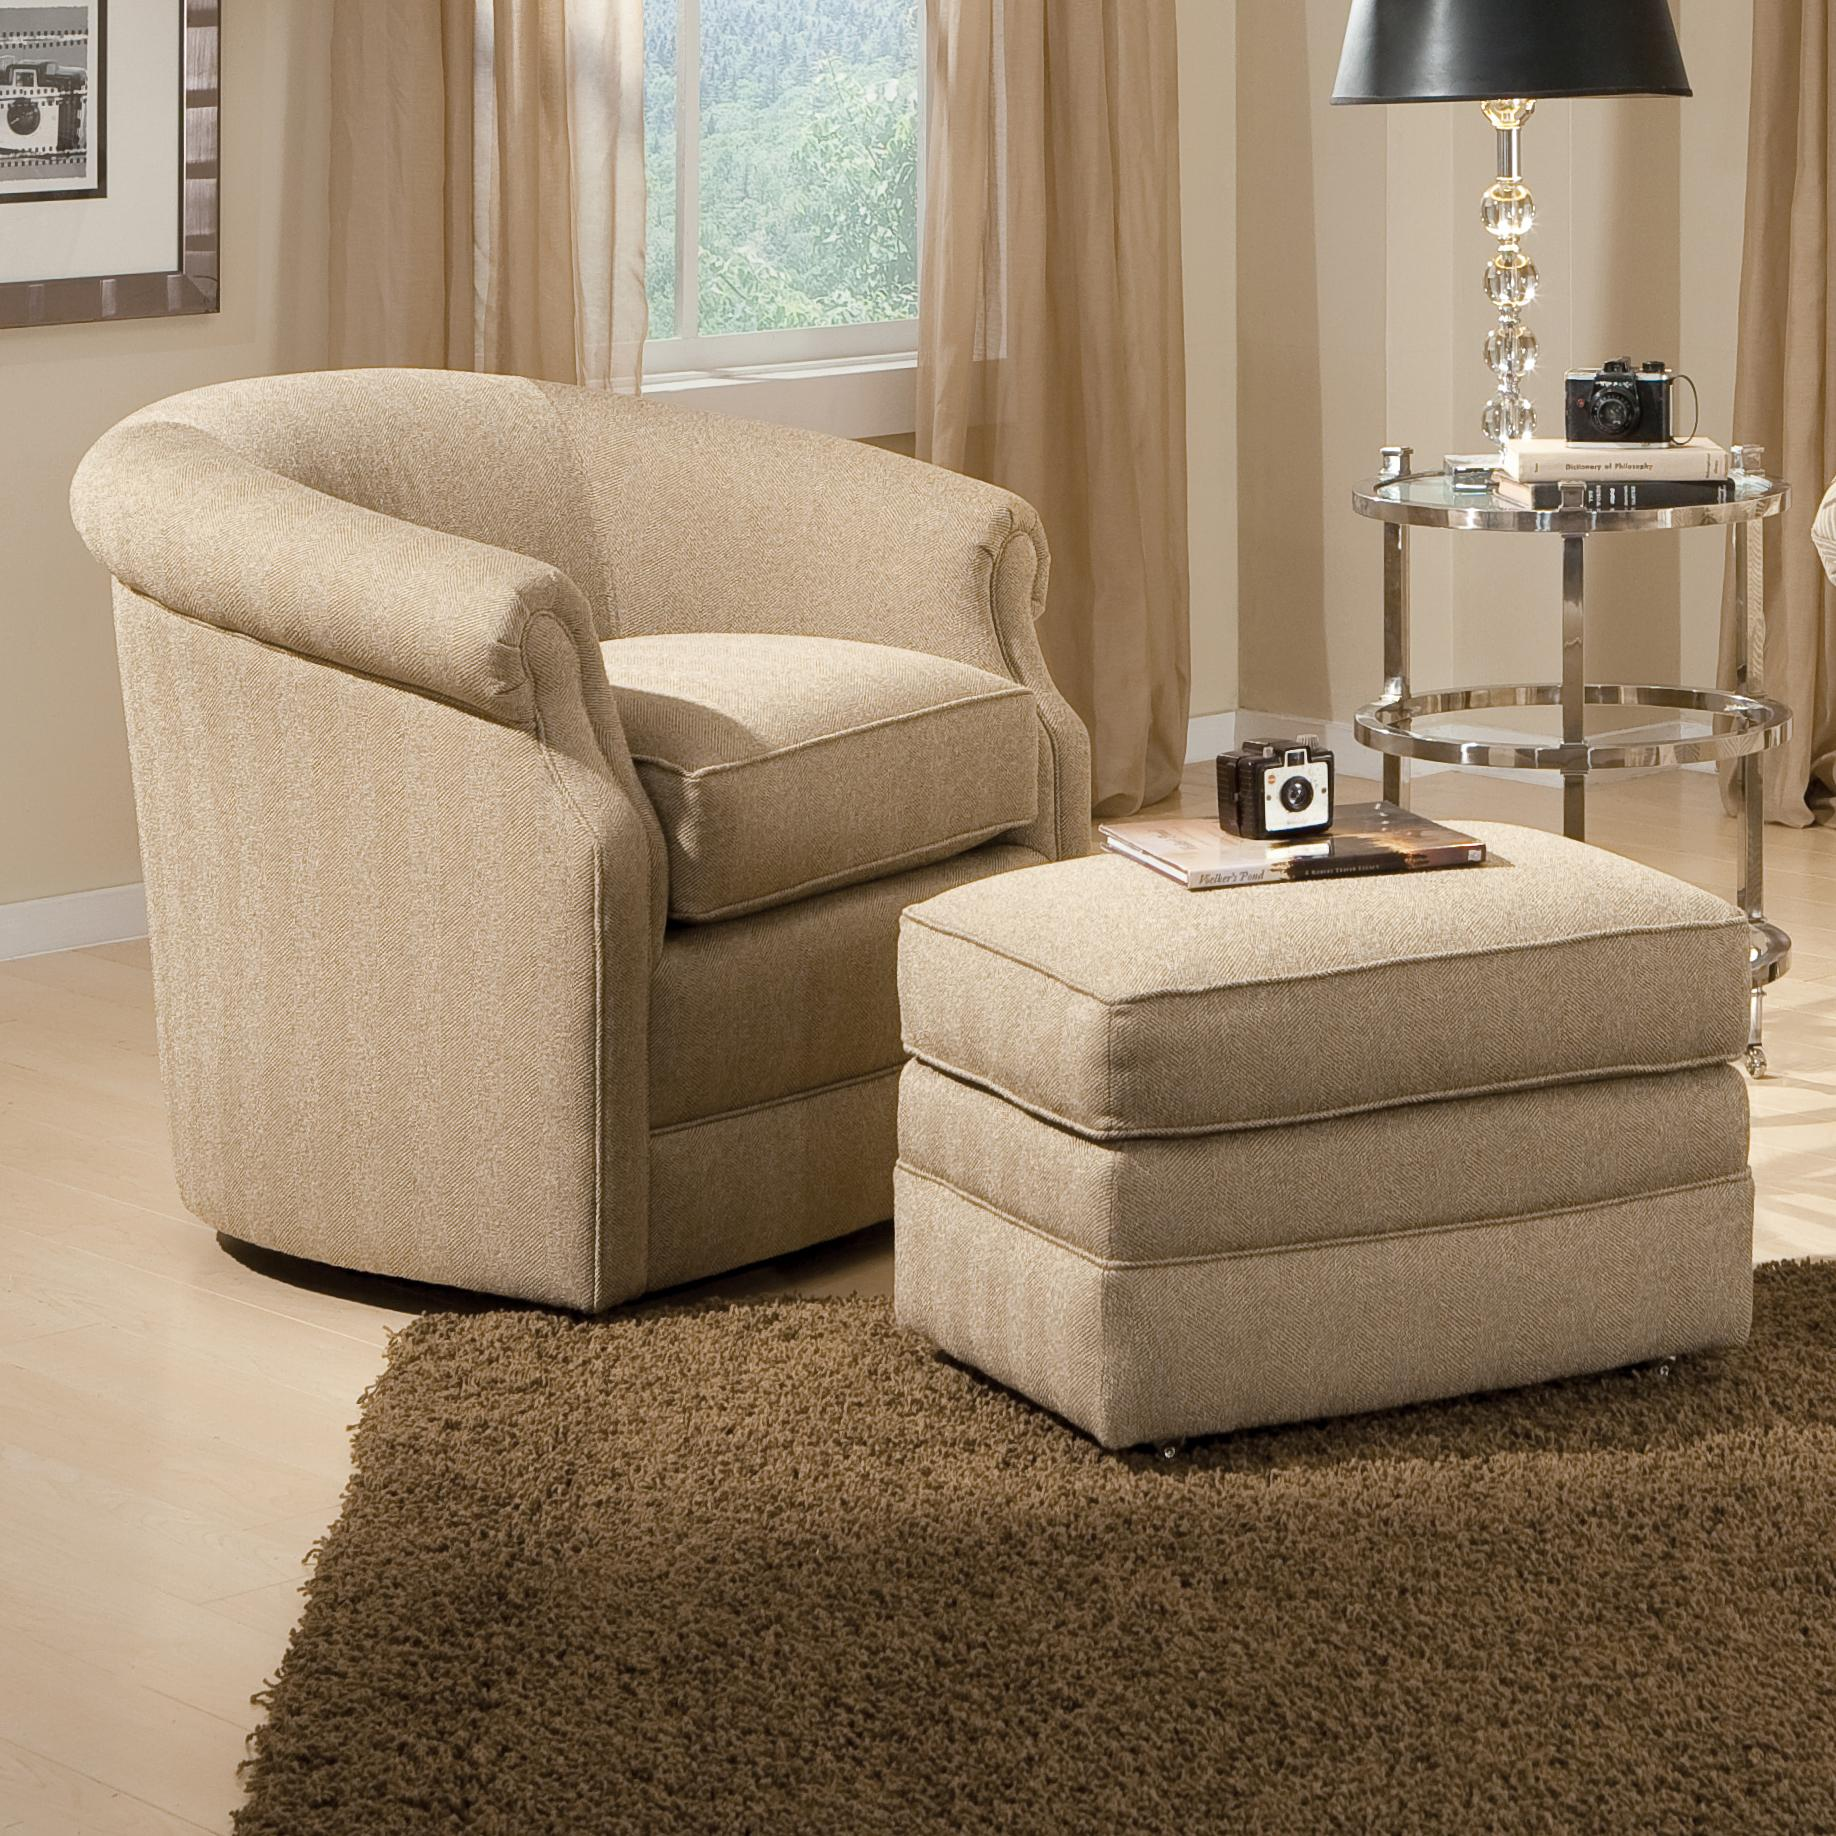 Barrel swivel chair and ottoman with casters by smith for Living room ideas accent chairs